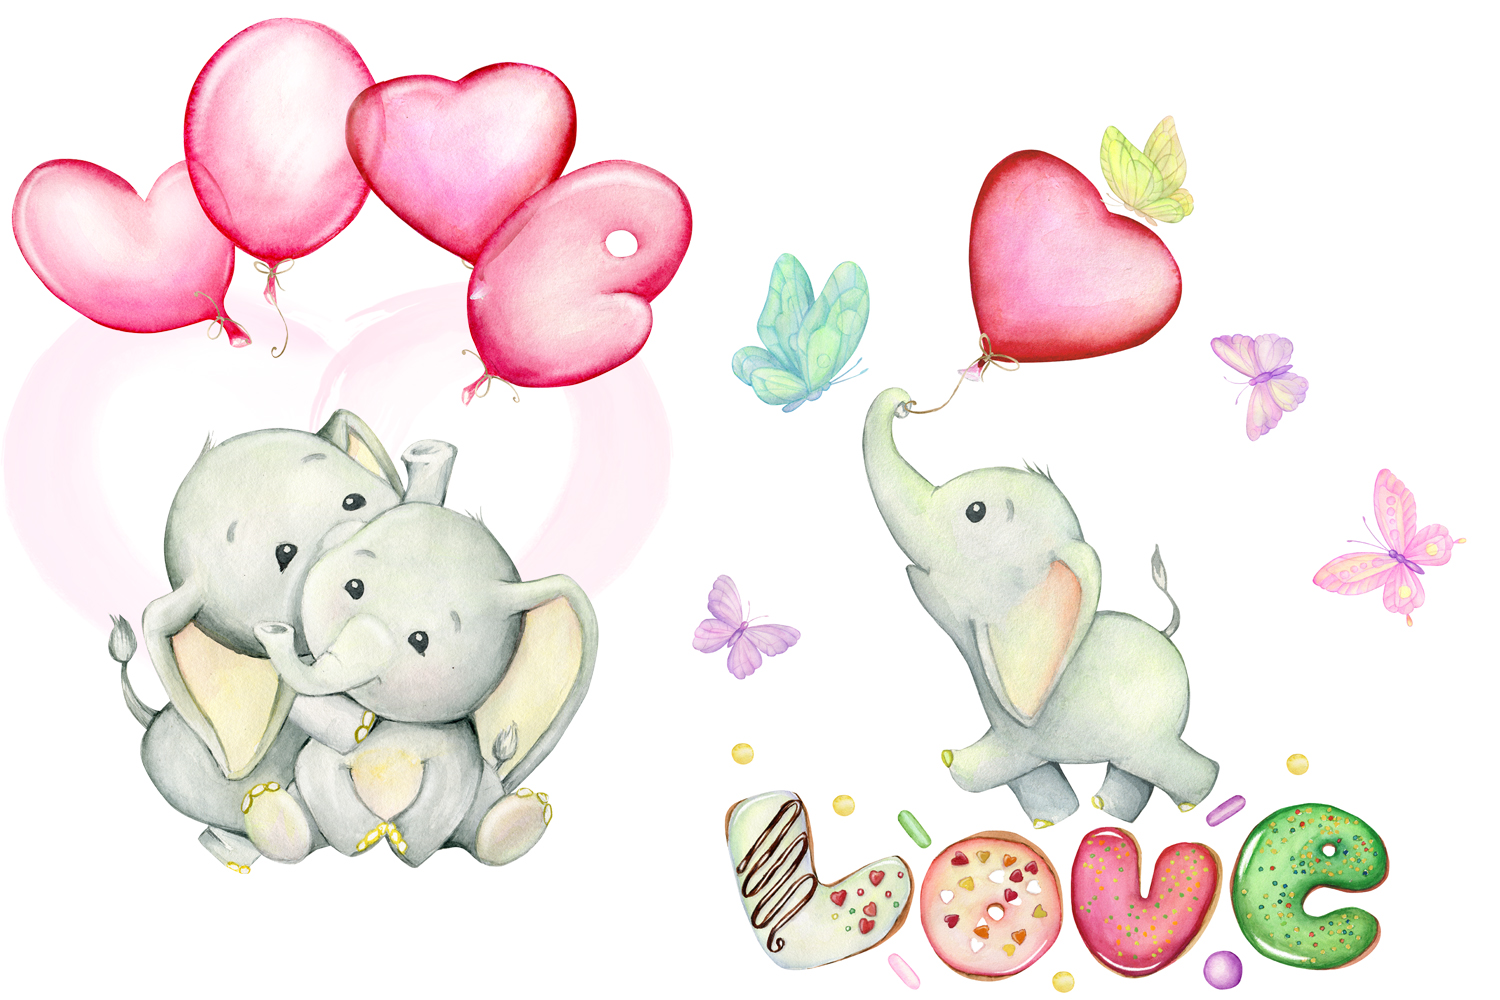 watercolor Cute little elephants, for Valentine's Day example image 2